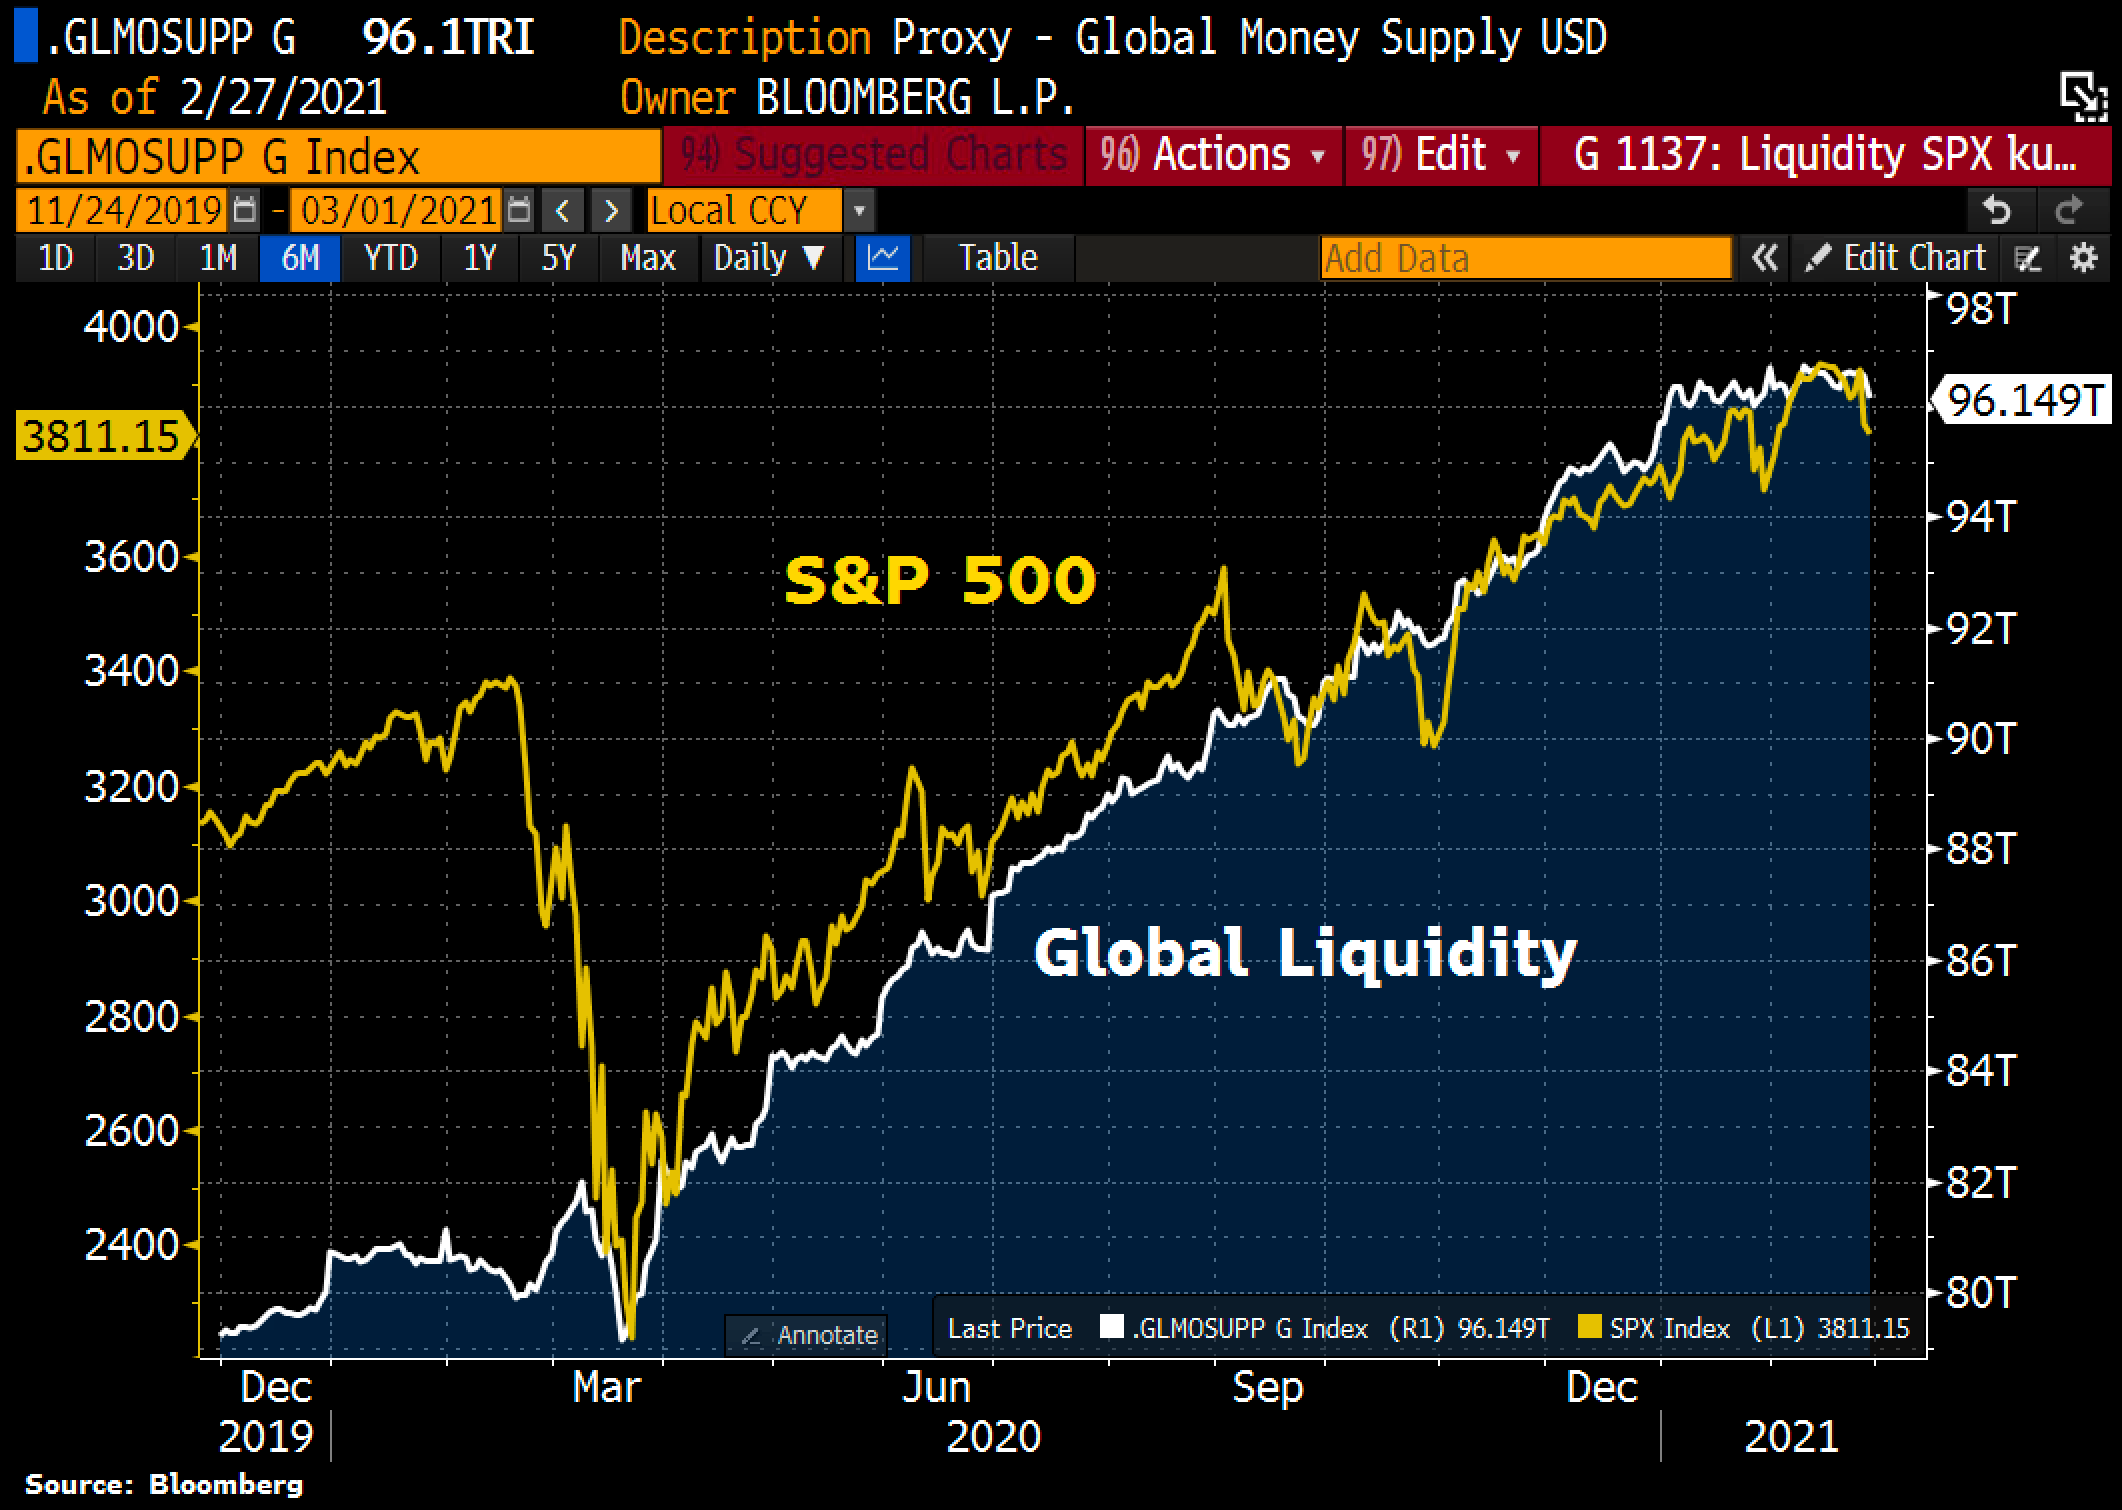 Global liquidity is correlated to the performance of the S&P500